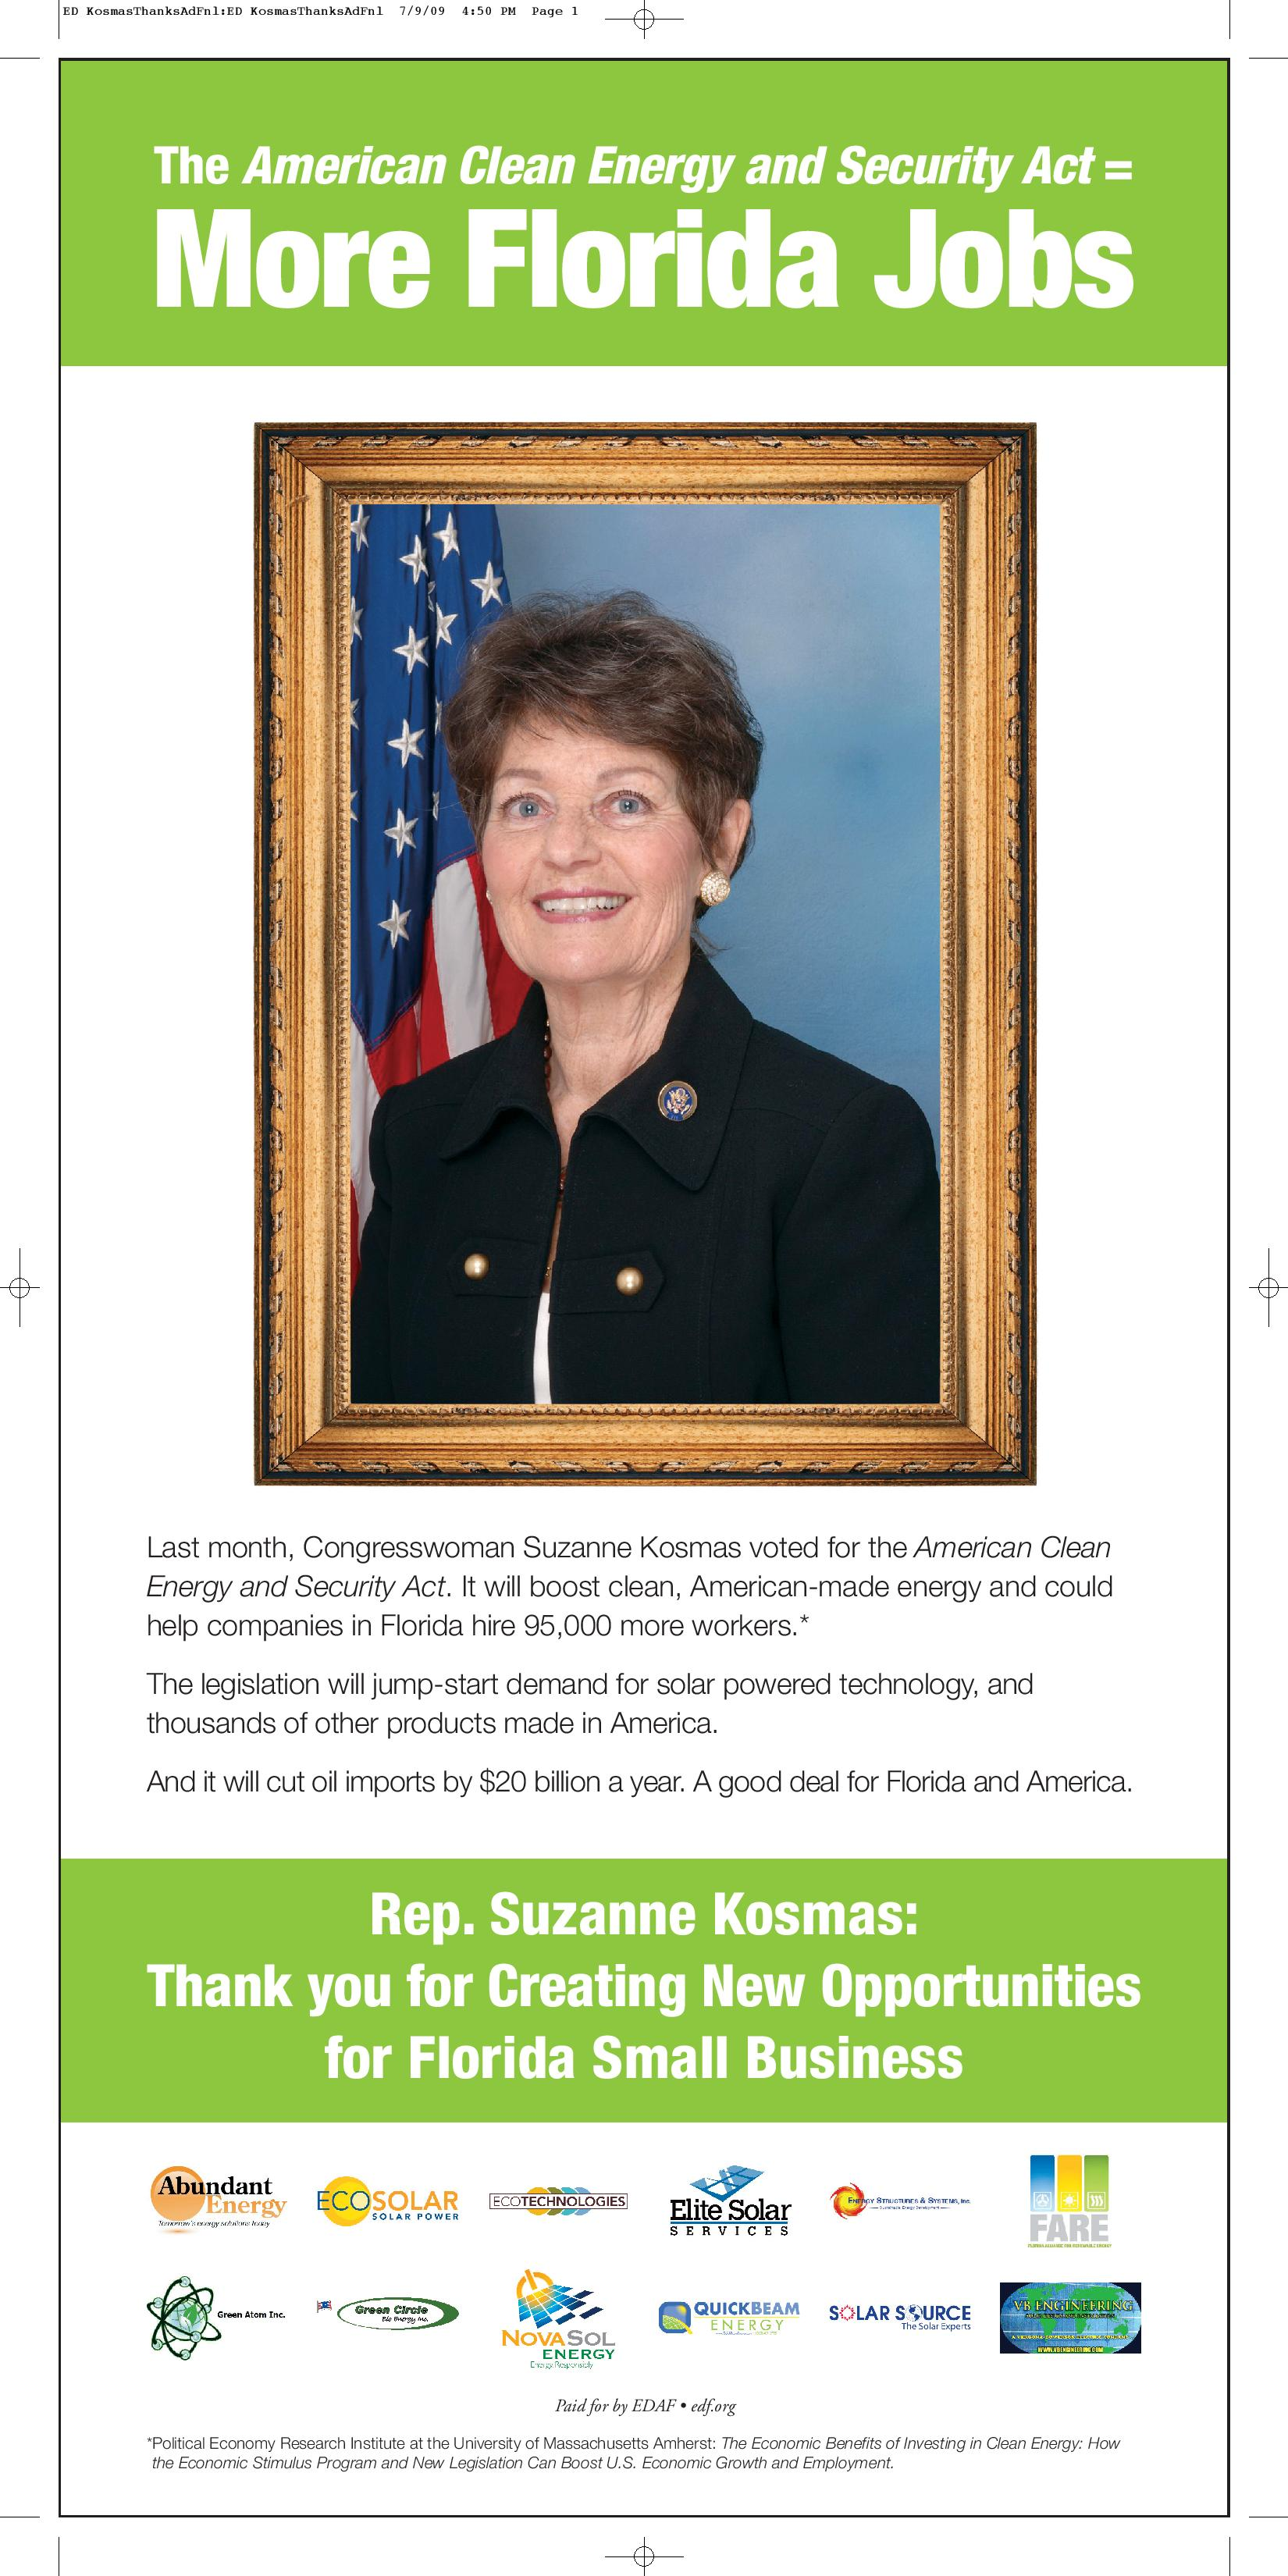 Thank You for Supporting the American Clean Energy and Security Act: Rep. Suzanne Kosmas